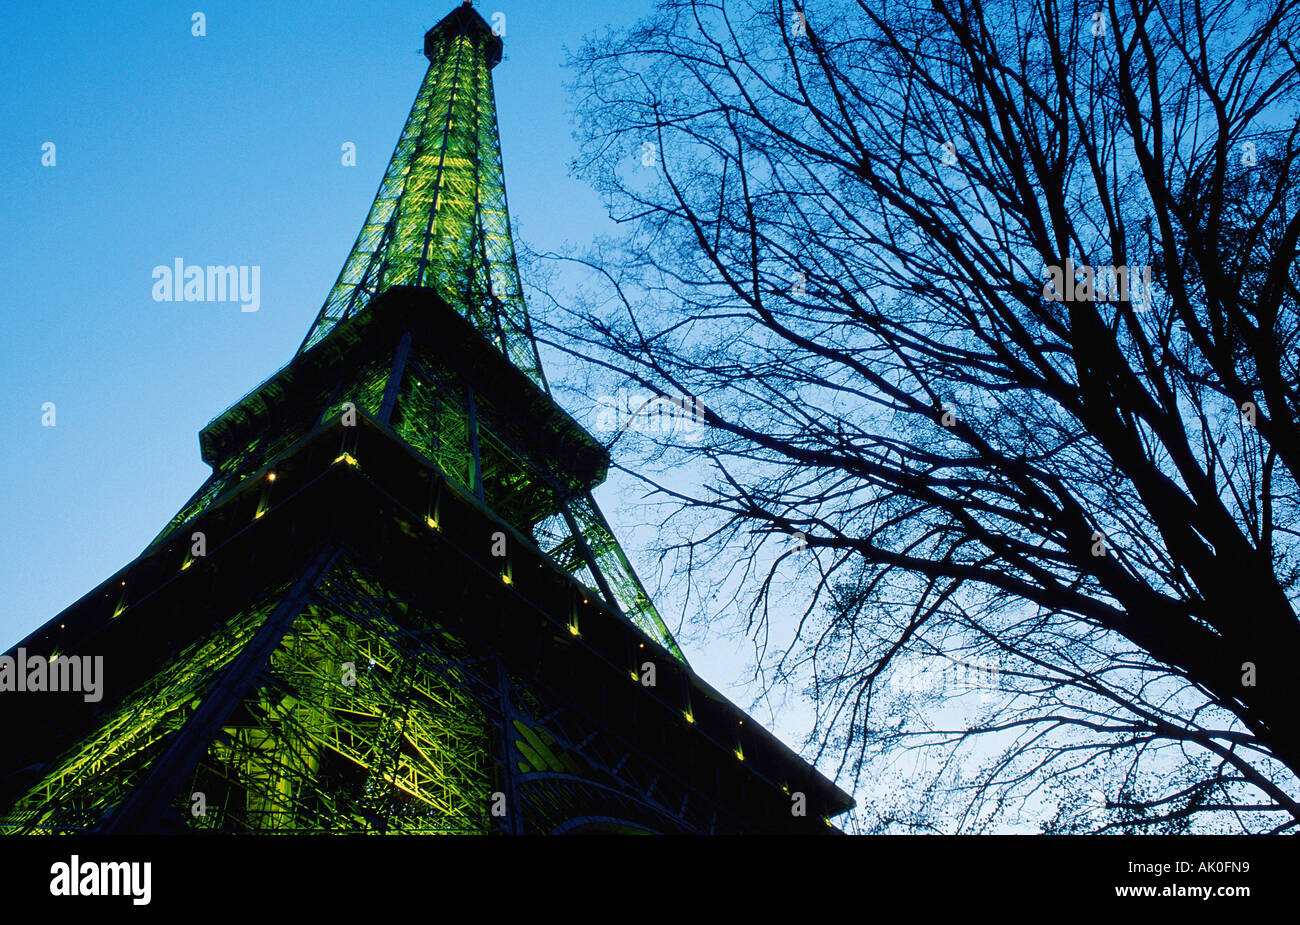 Eiffel Tower / Eiffelturm - Stock Image